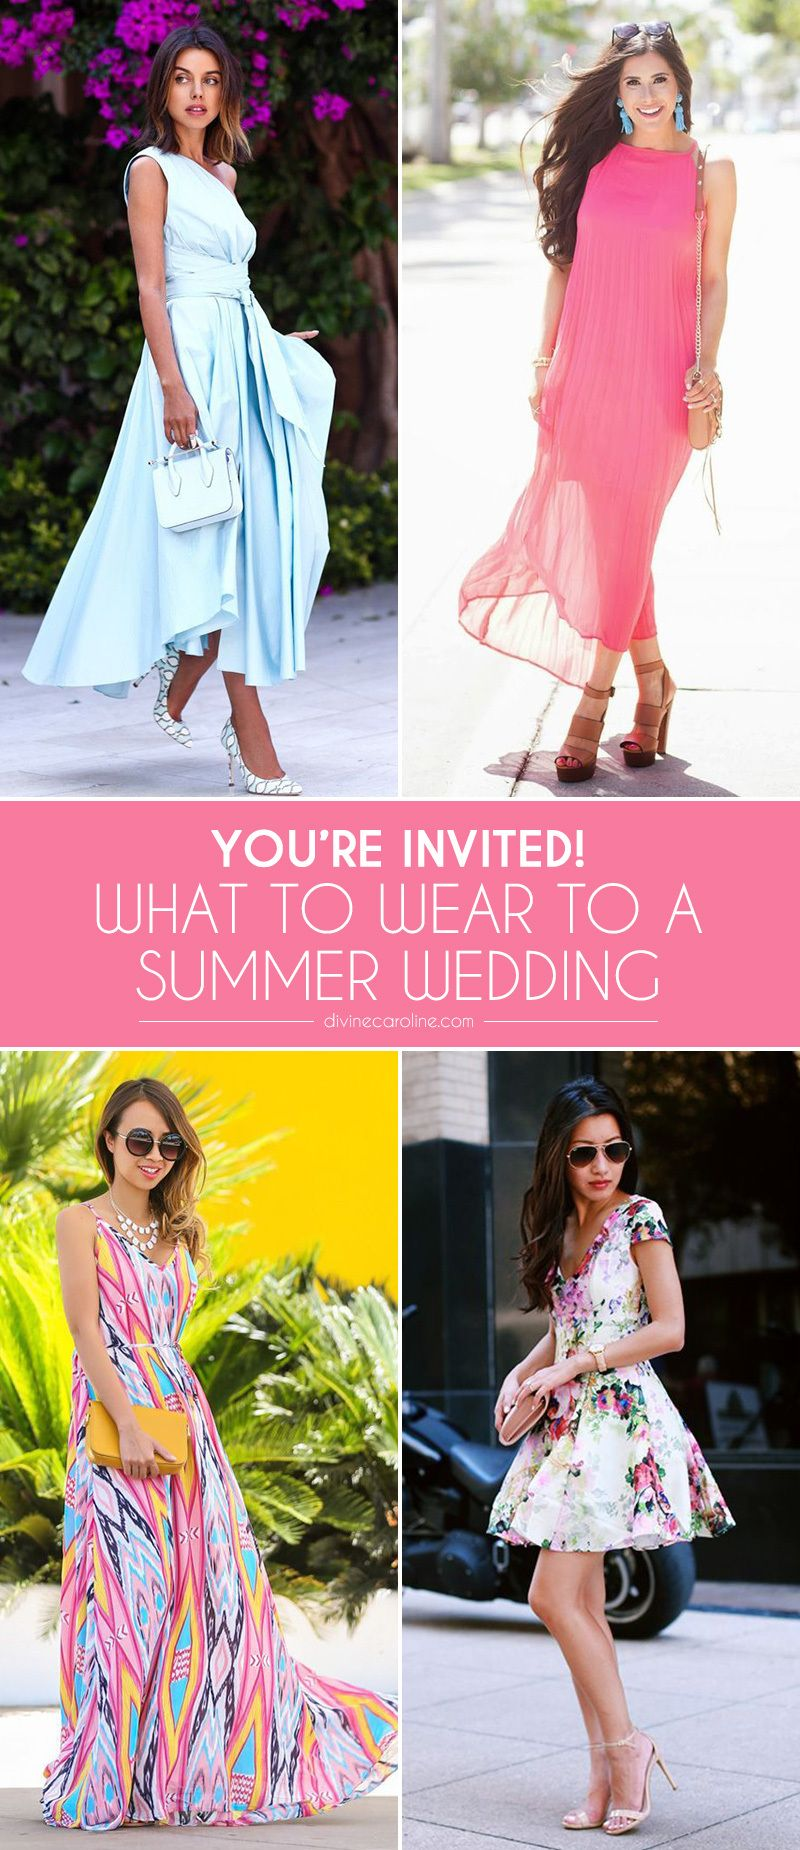 Youure invited what to wear to a summer wedding summer weddings